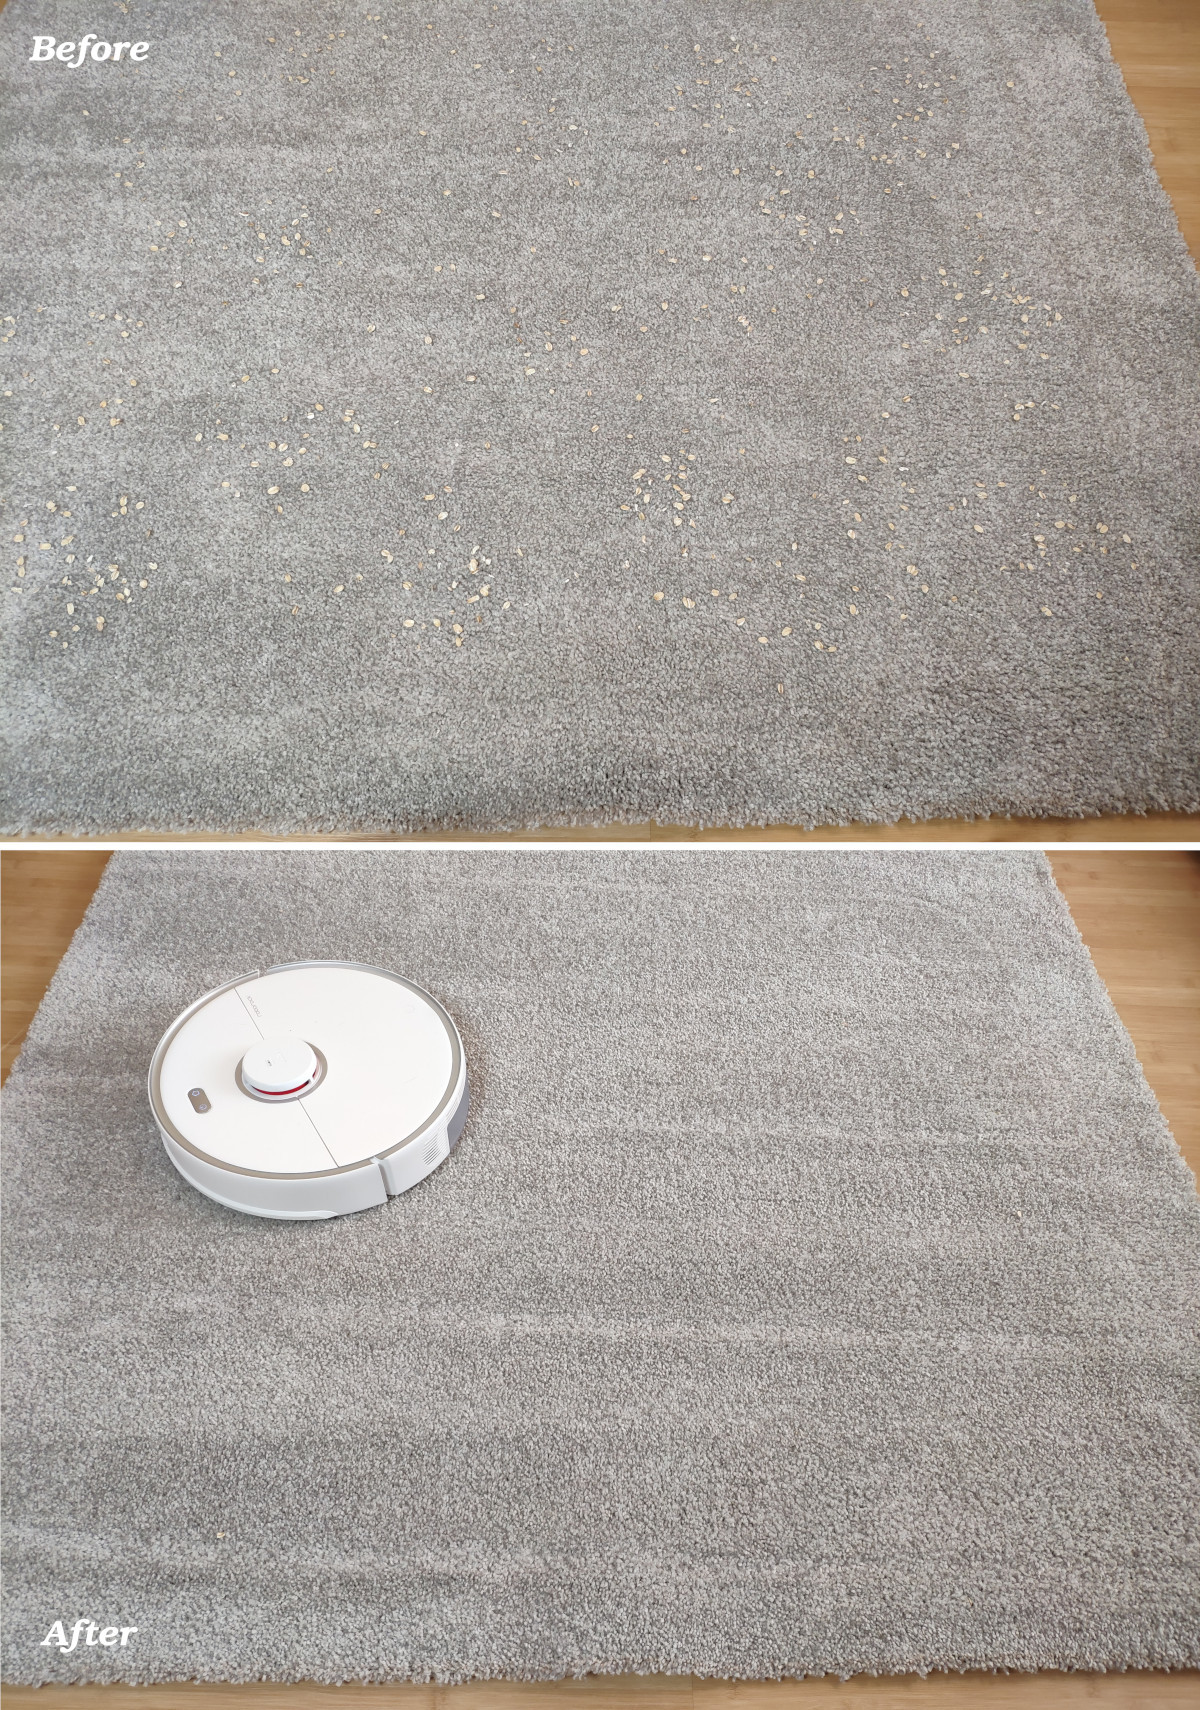 Roborock S5 Max cleaning test on a medium-pile carpet